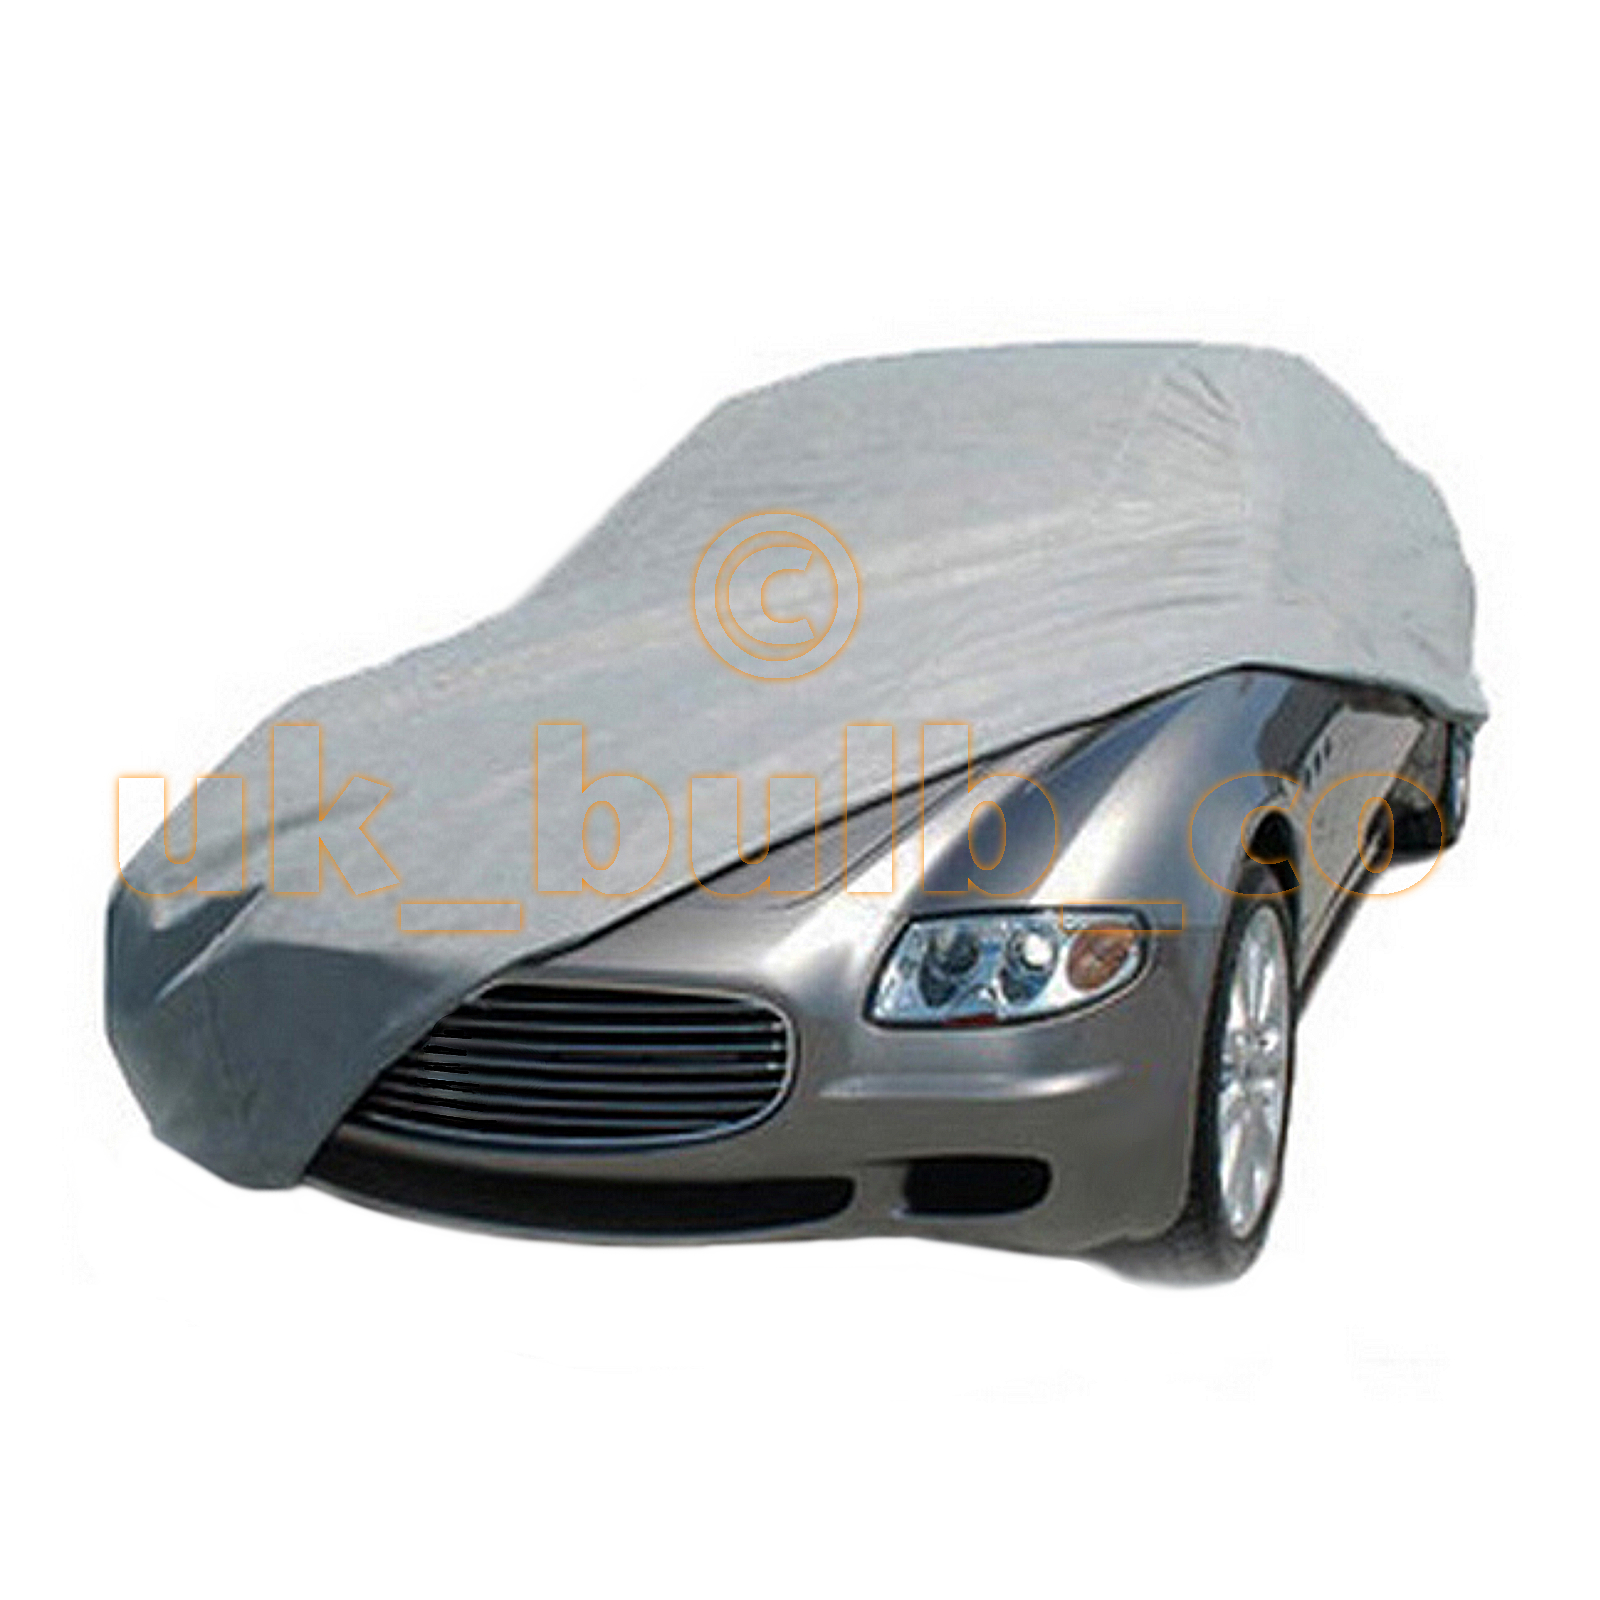 Bmw Z3 Car Cover: SILVER WATERPROOF CAR COVER TO FIT BMW Z3 MODELS